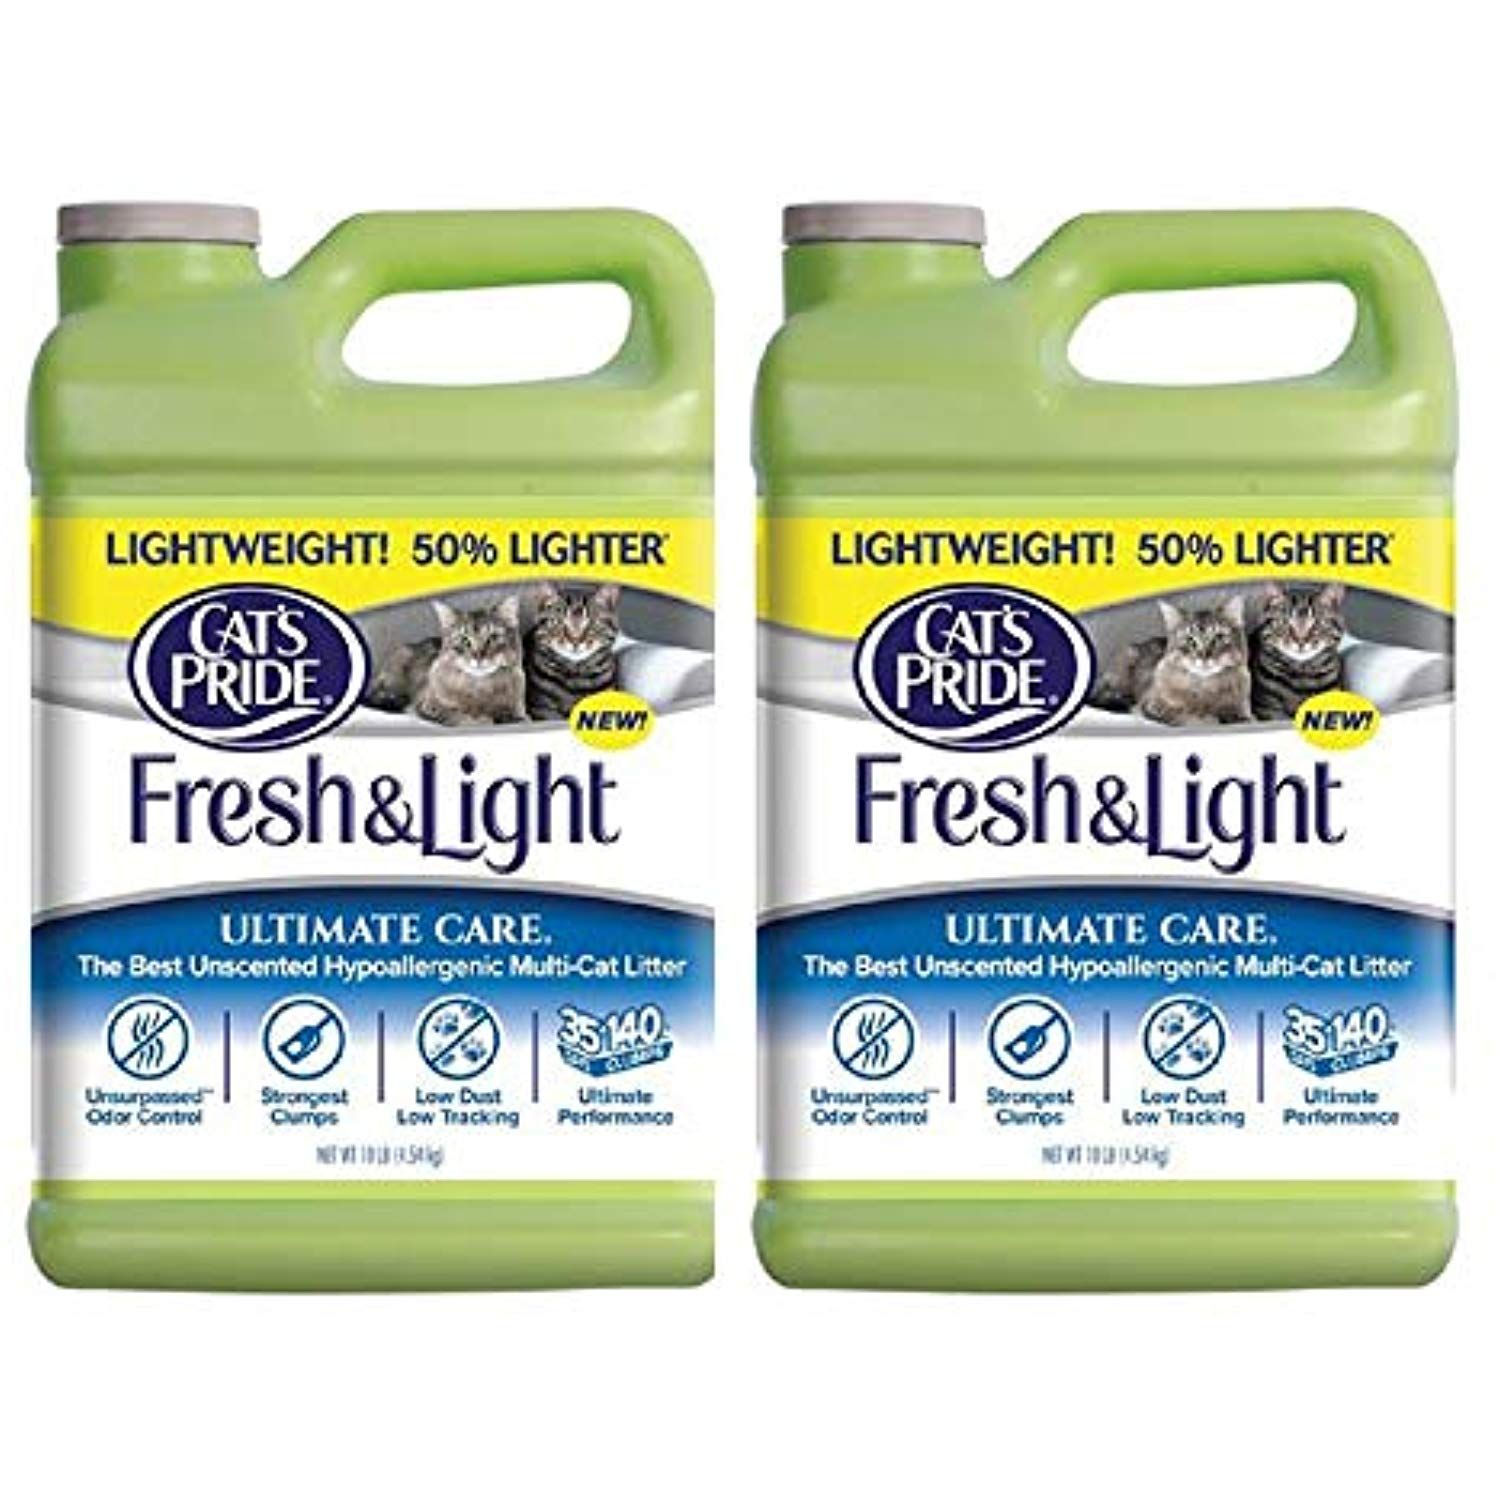 Cat's Pride Fresh Ultimate Care Lightweight Unscented